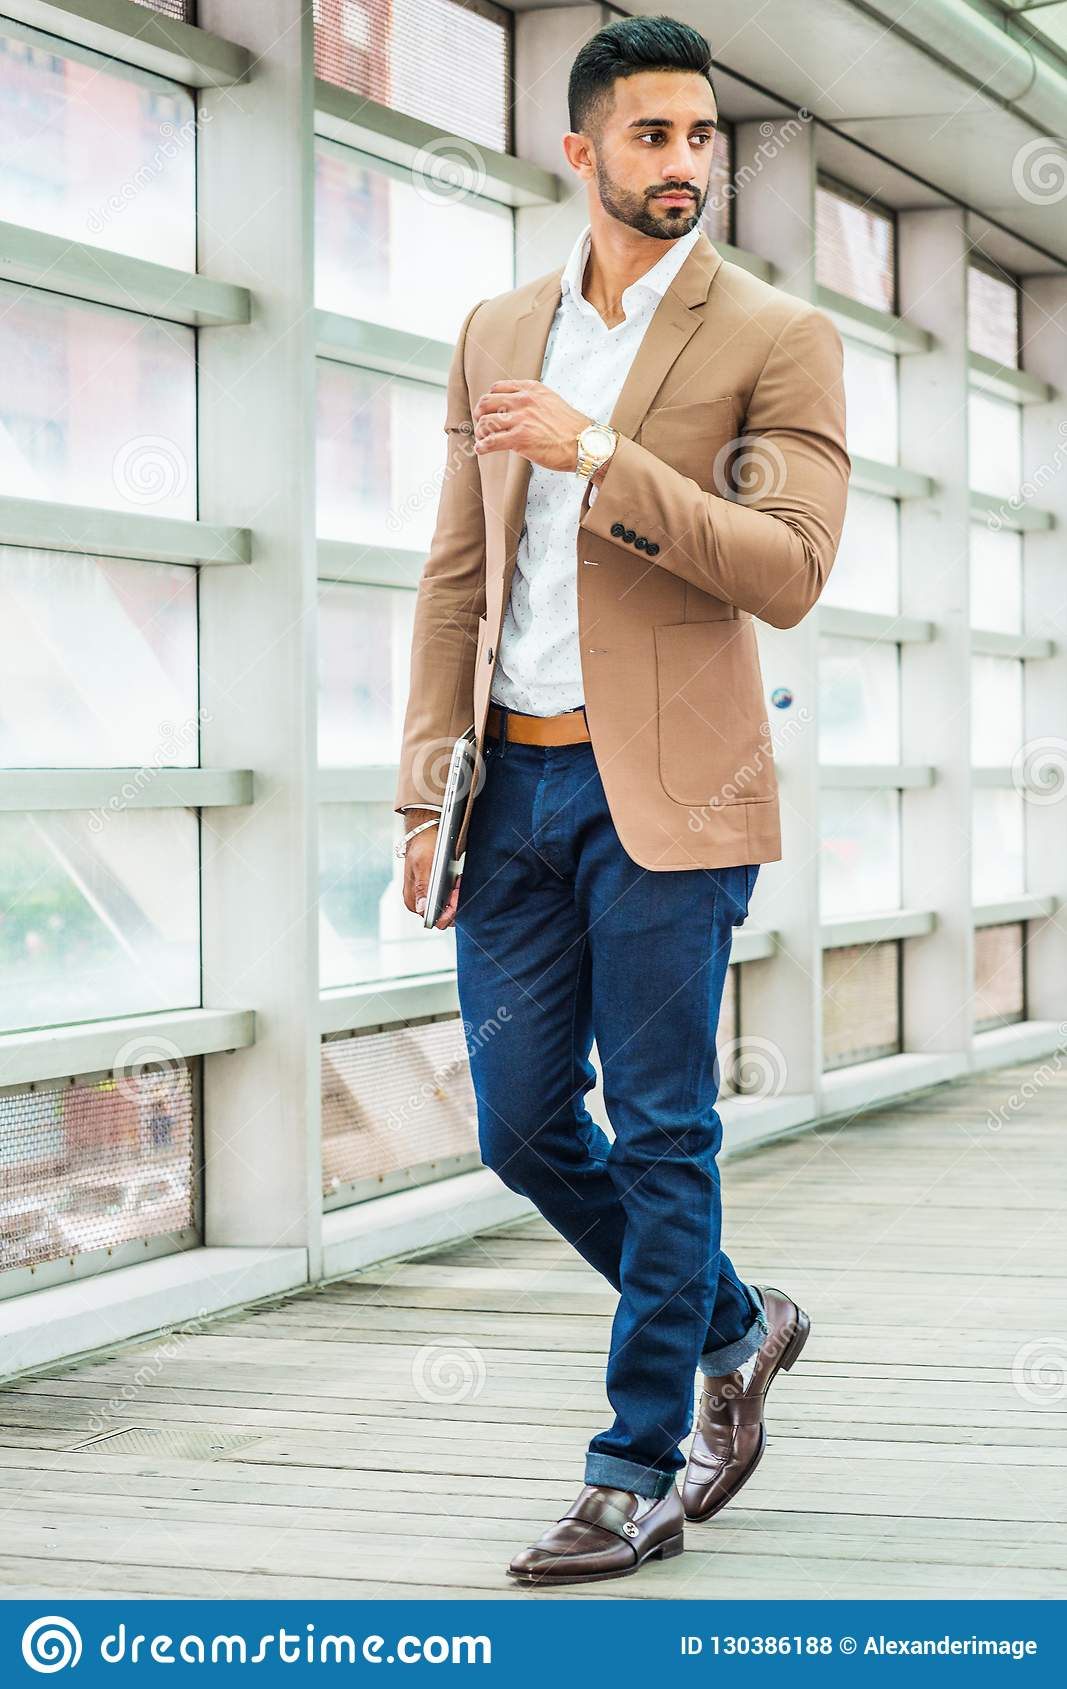 286866df6d7 Young Man Business Casual Fashion In New York Stock Photo - Image of ...